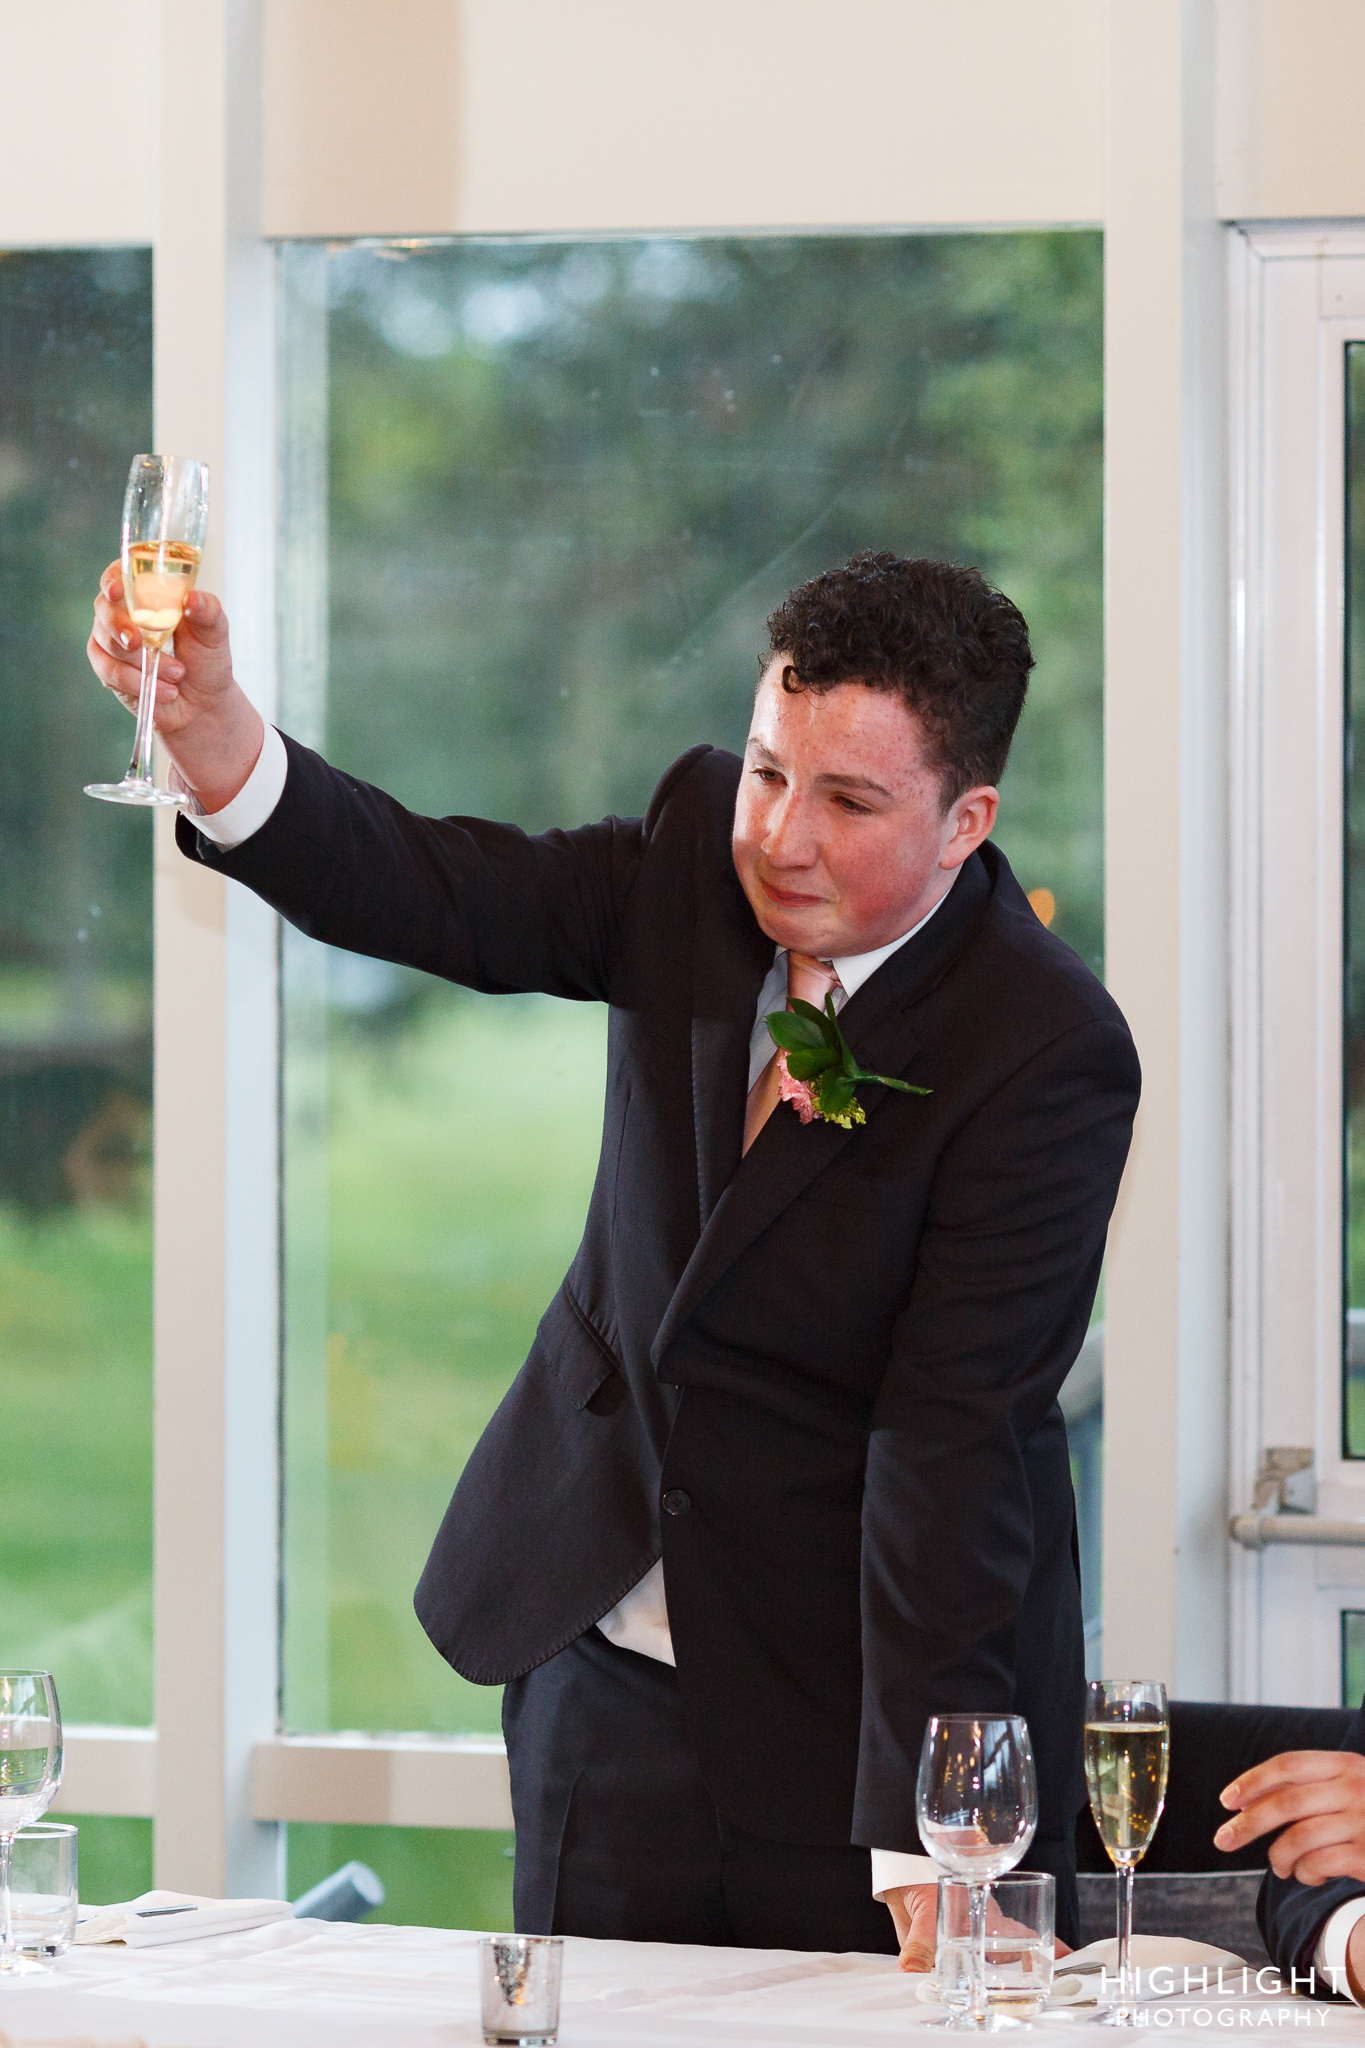 highlight_wedding_photography_palmerston_north_manawatu_chalet_wedding-104.jpg